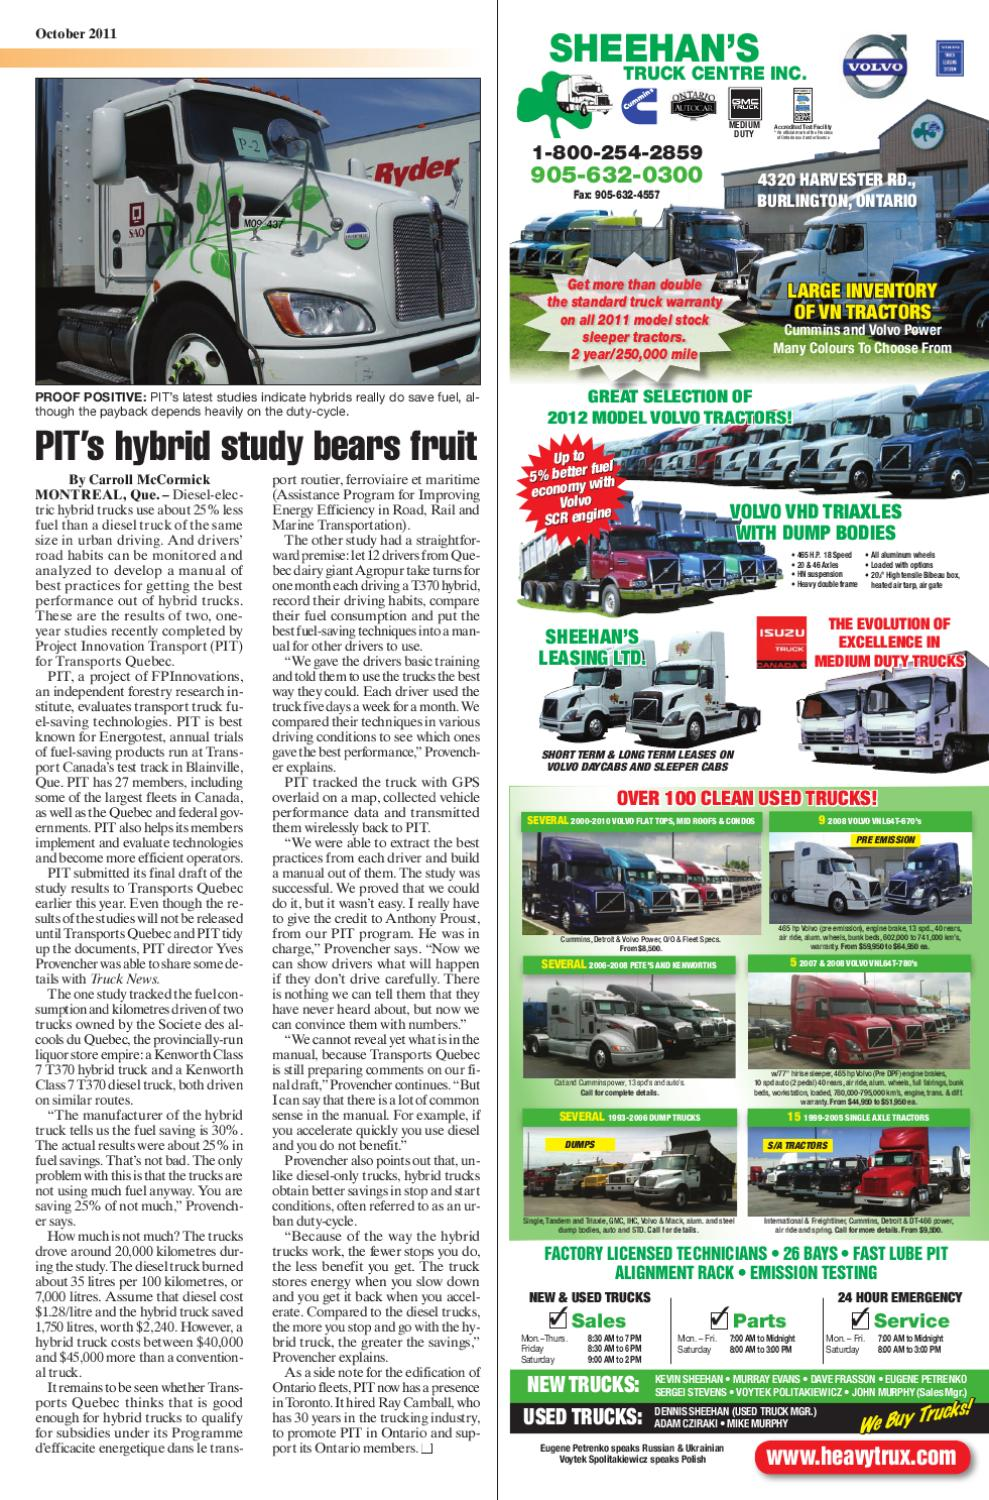 Truck News October 2011 By Annex Business Media Issuu